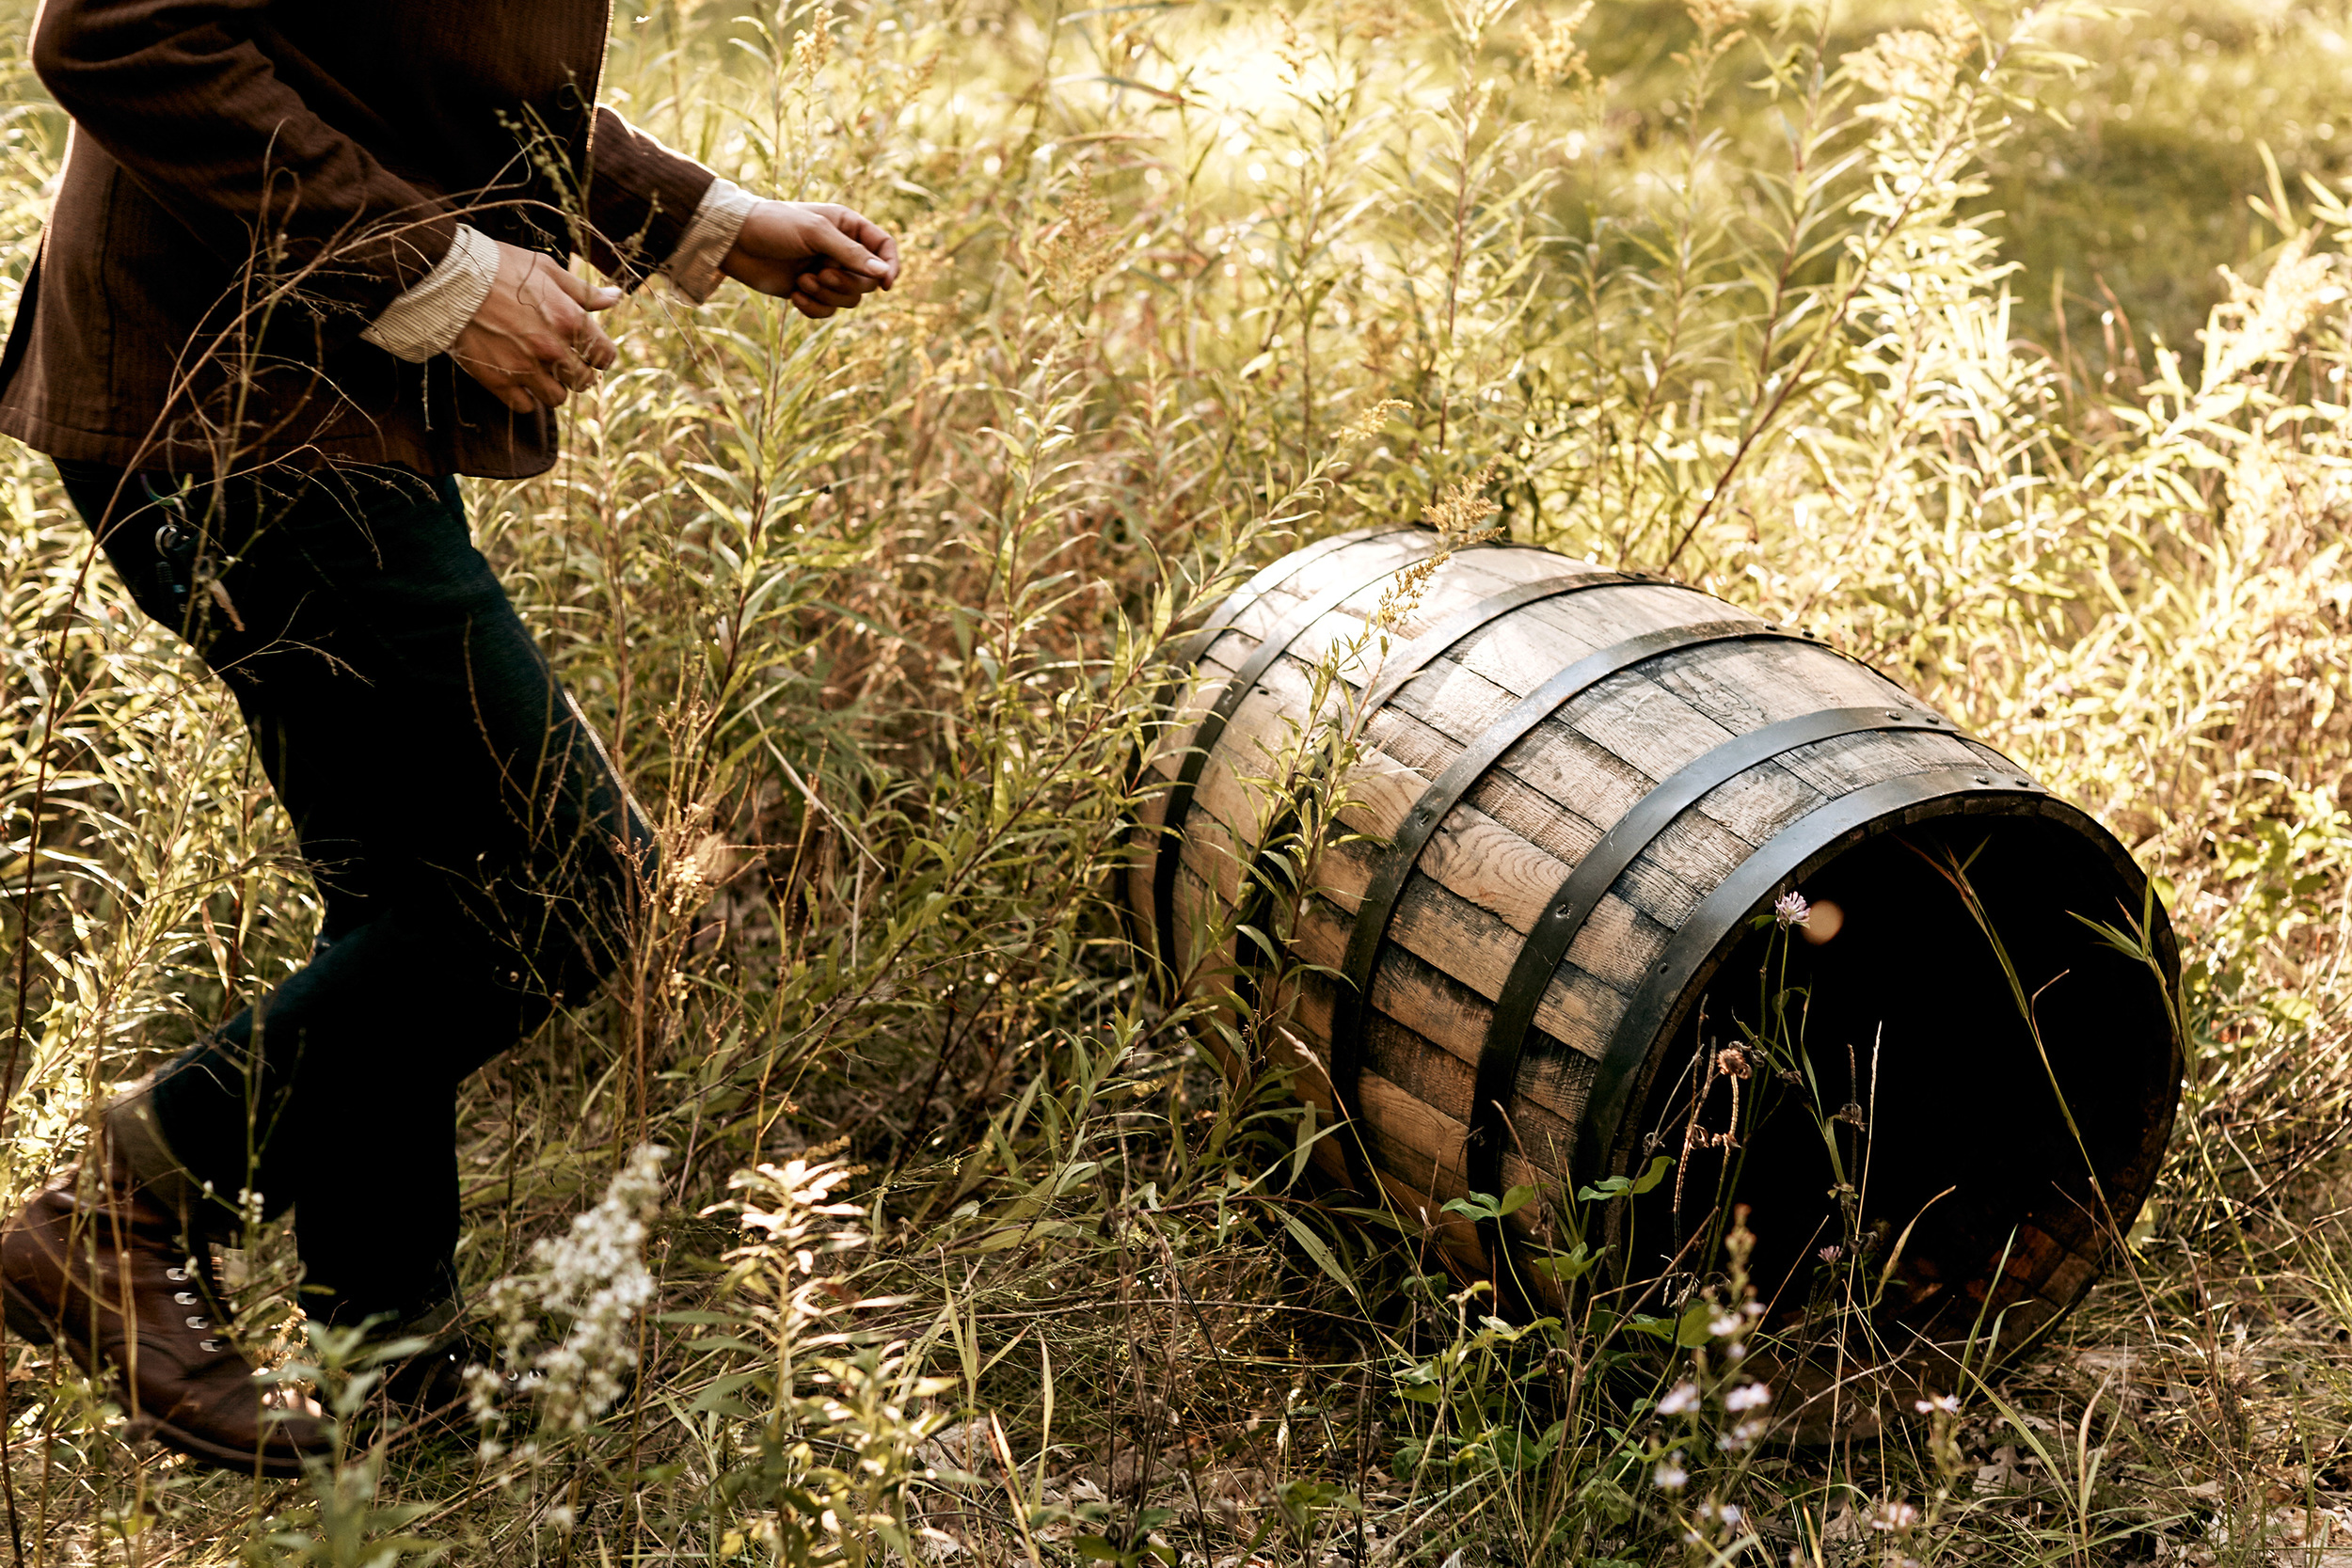 Ben & the Barrel